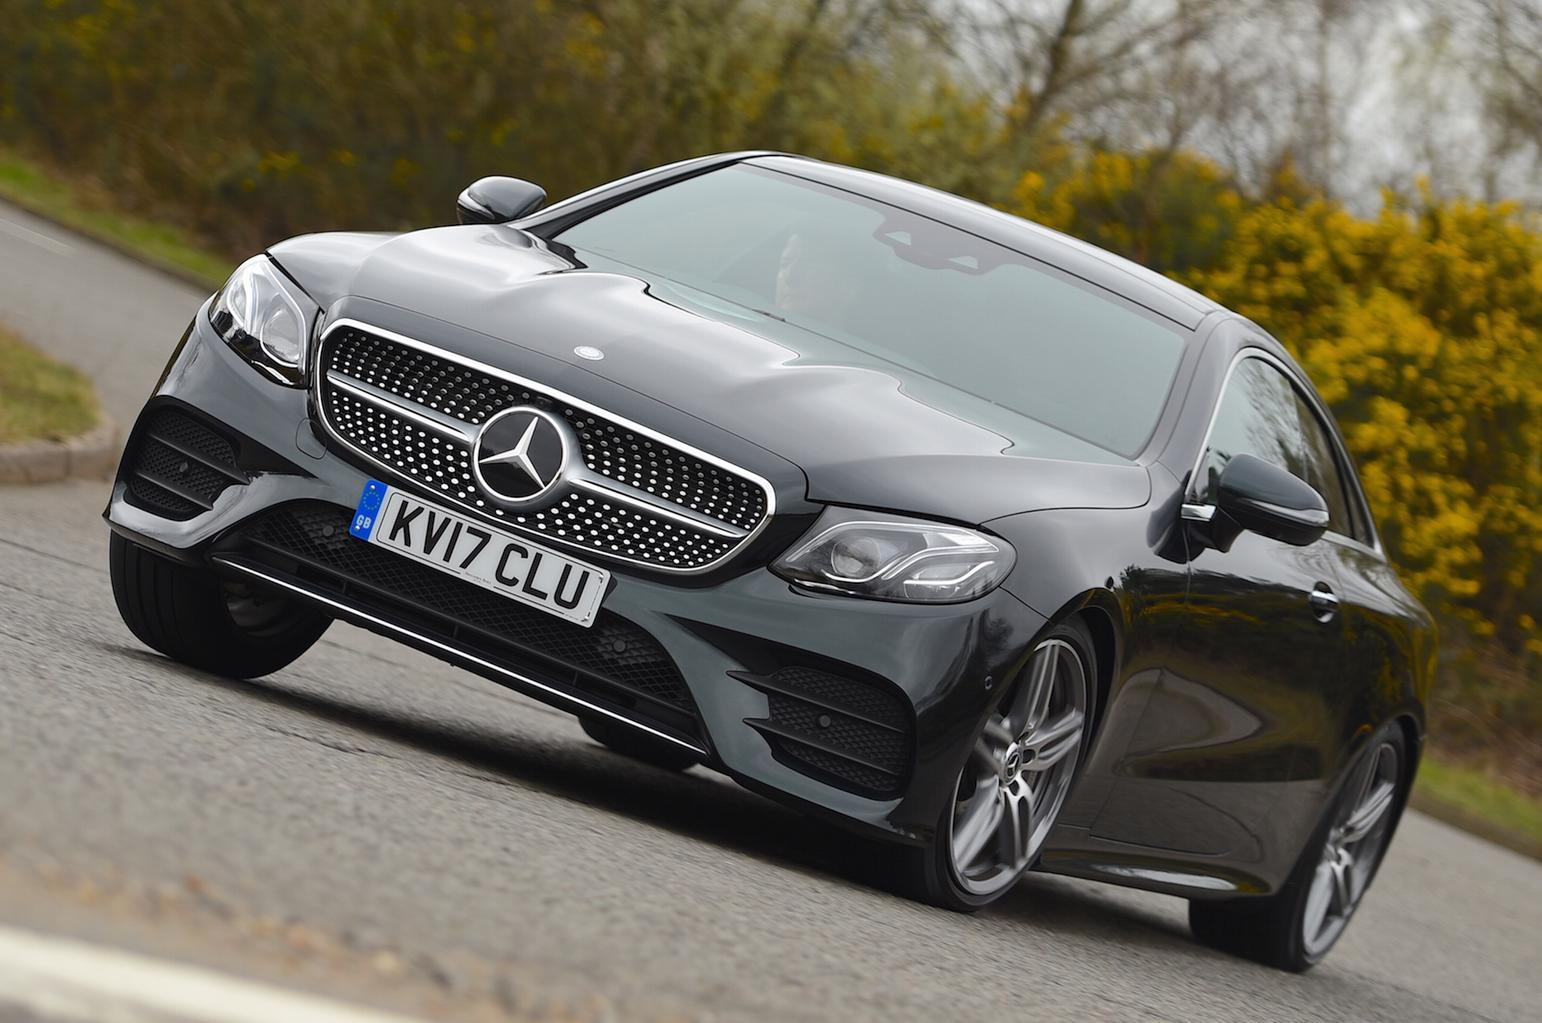 Best car deals for less than £700 per month